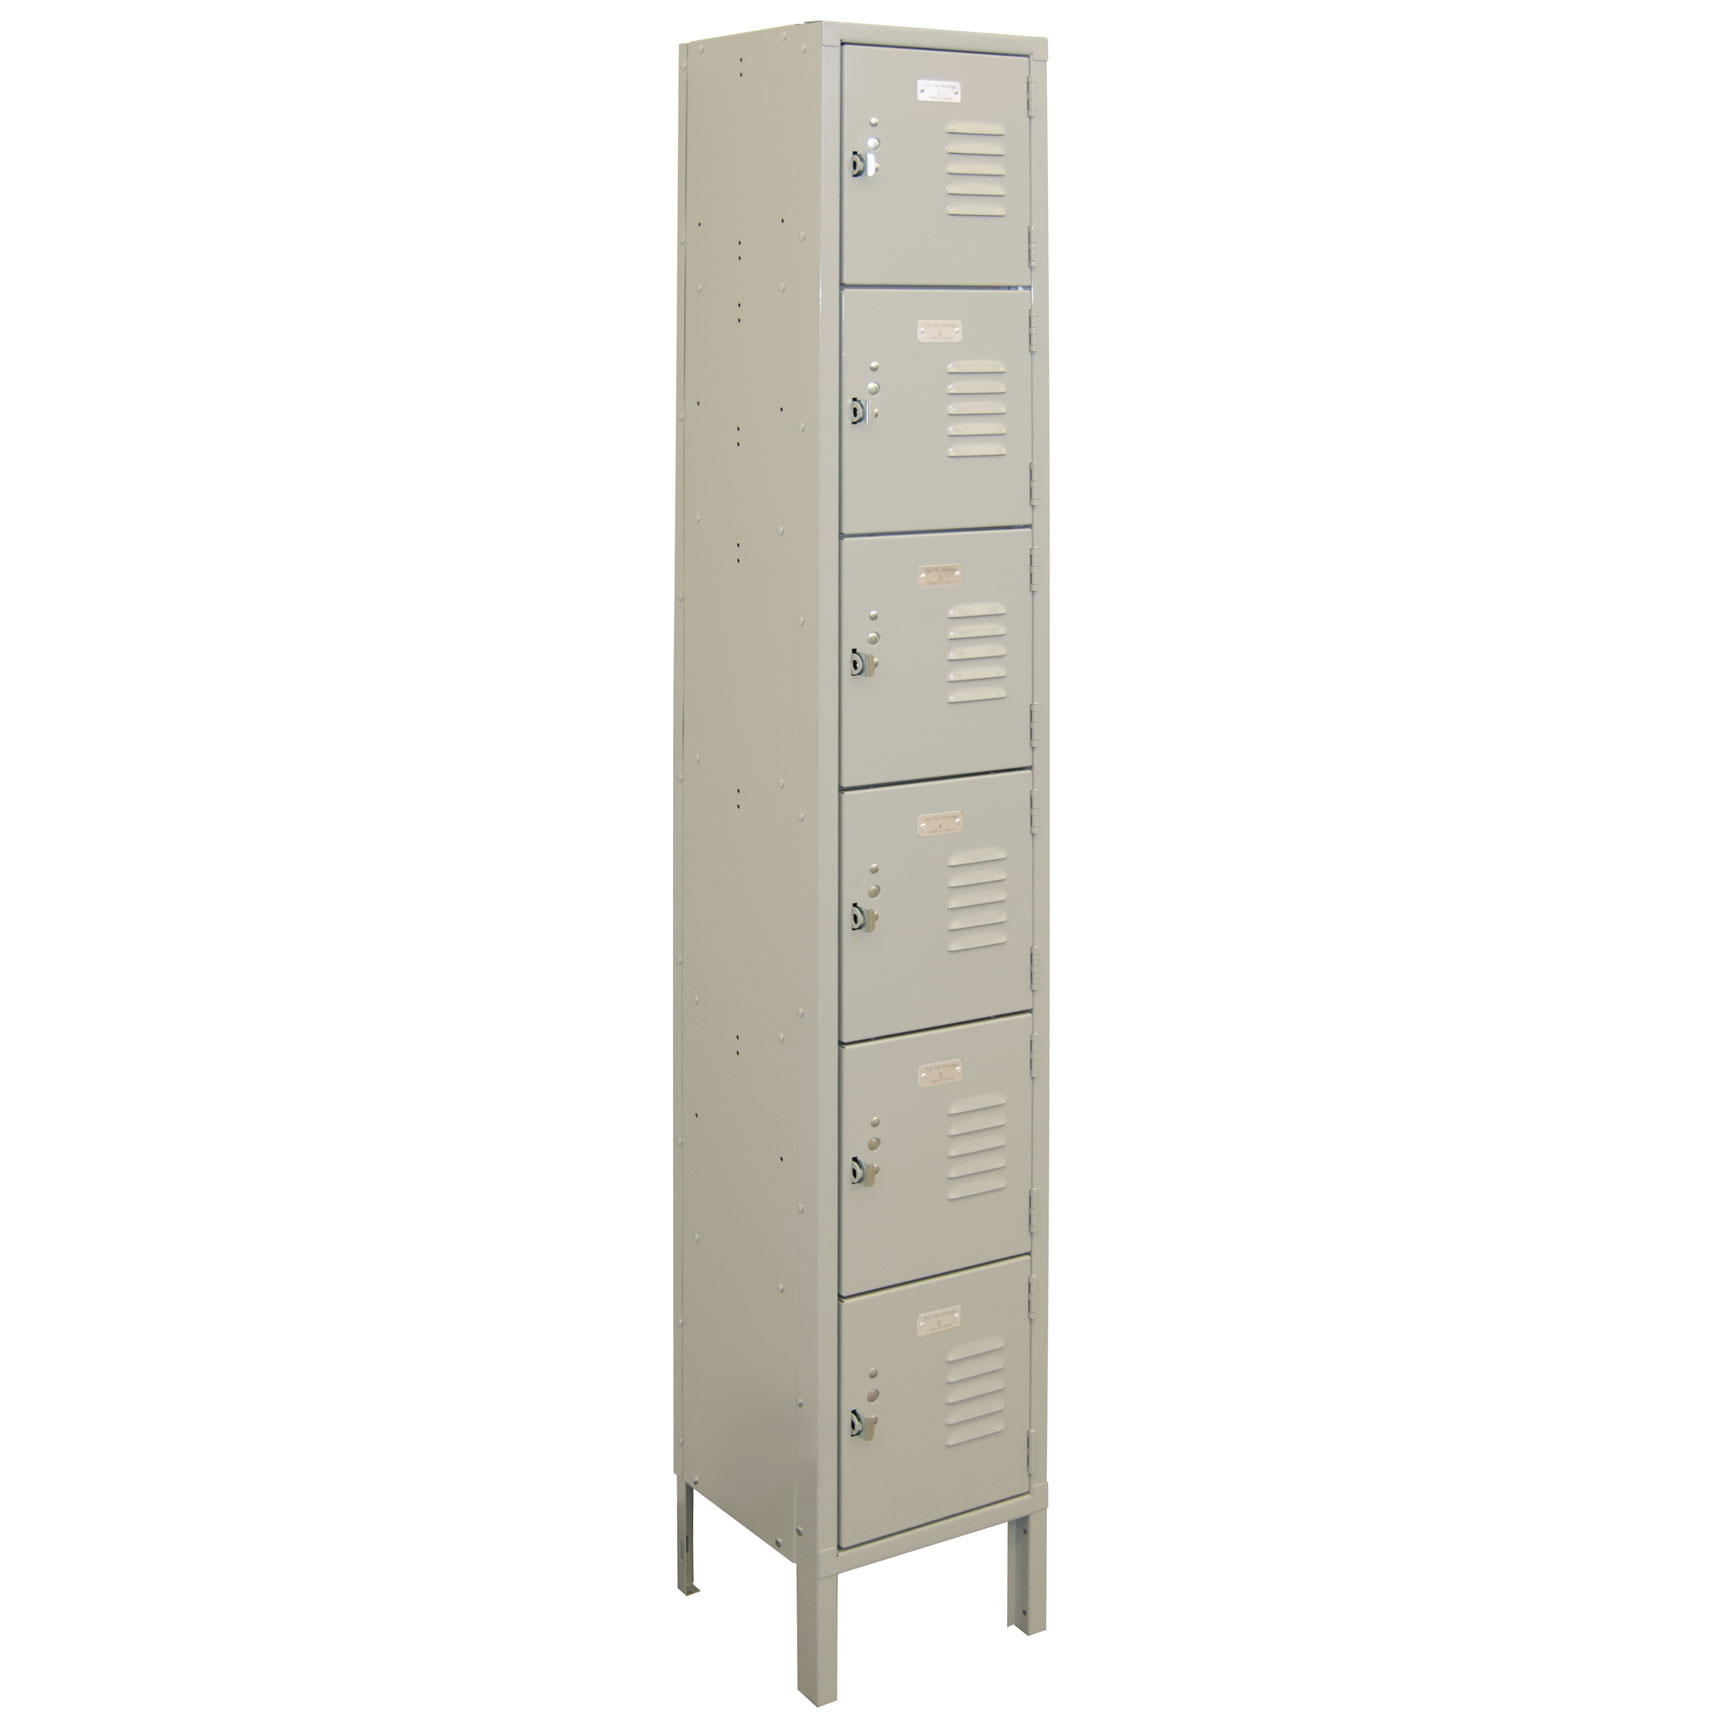 OfficeSource Corridor Lockers 6 Tier 1-Wide Locker